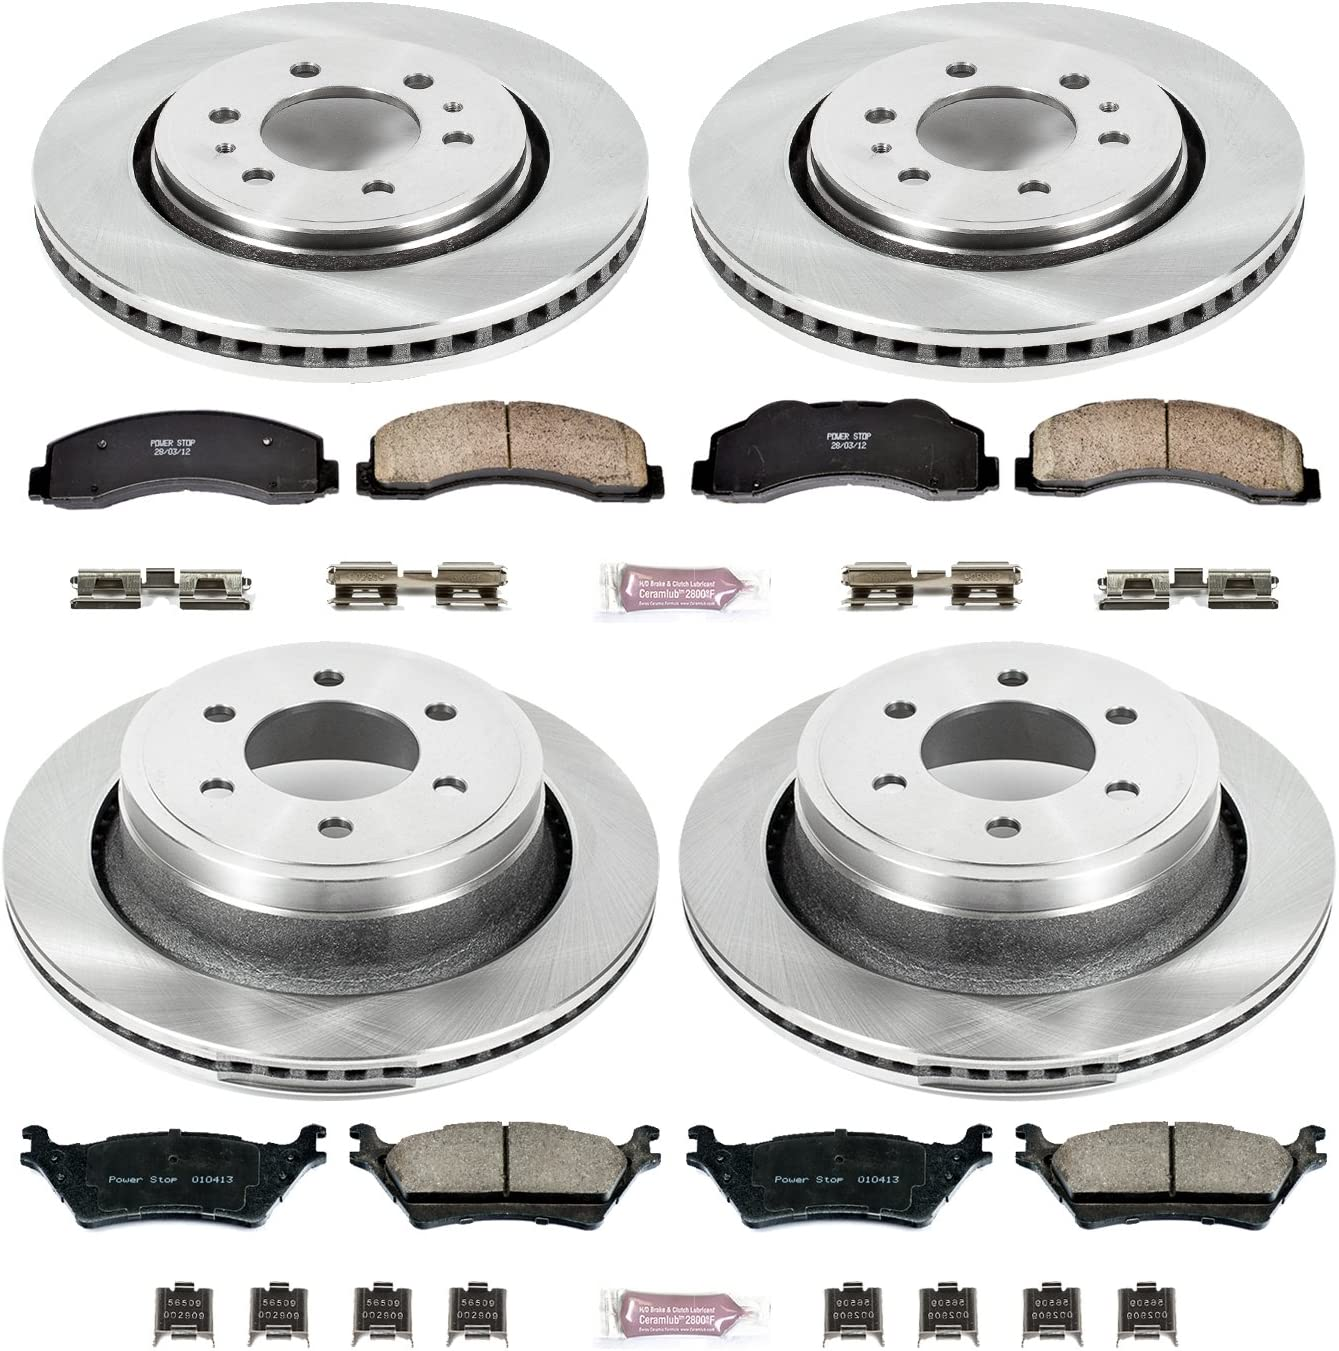 Power Stop CRK6268 front and rear Z17 Evolution Geomet Coated Brake Kit